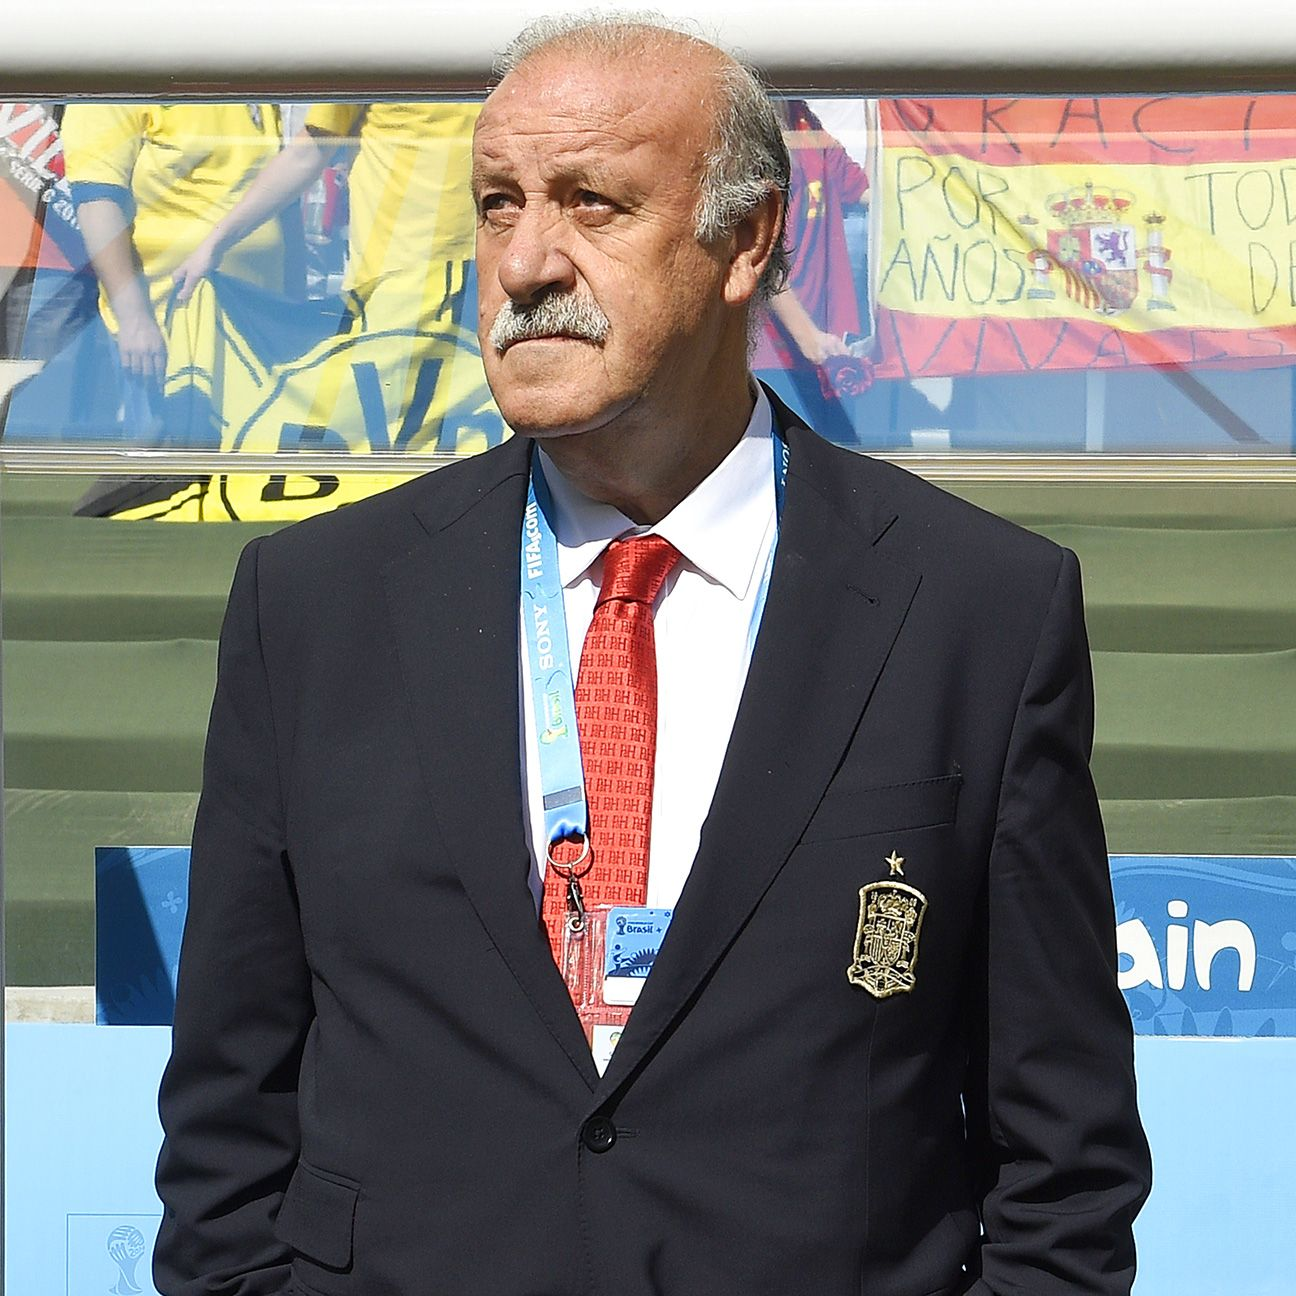 After a dismal showing at the World Cup, Spain head coach Vicente del Bosque looks to be dipping into the Spanish youth national team talent pool in preparation for Euro 2016.